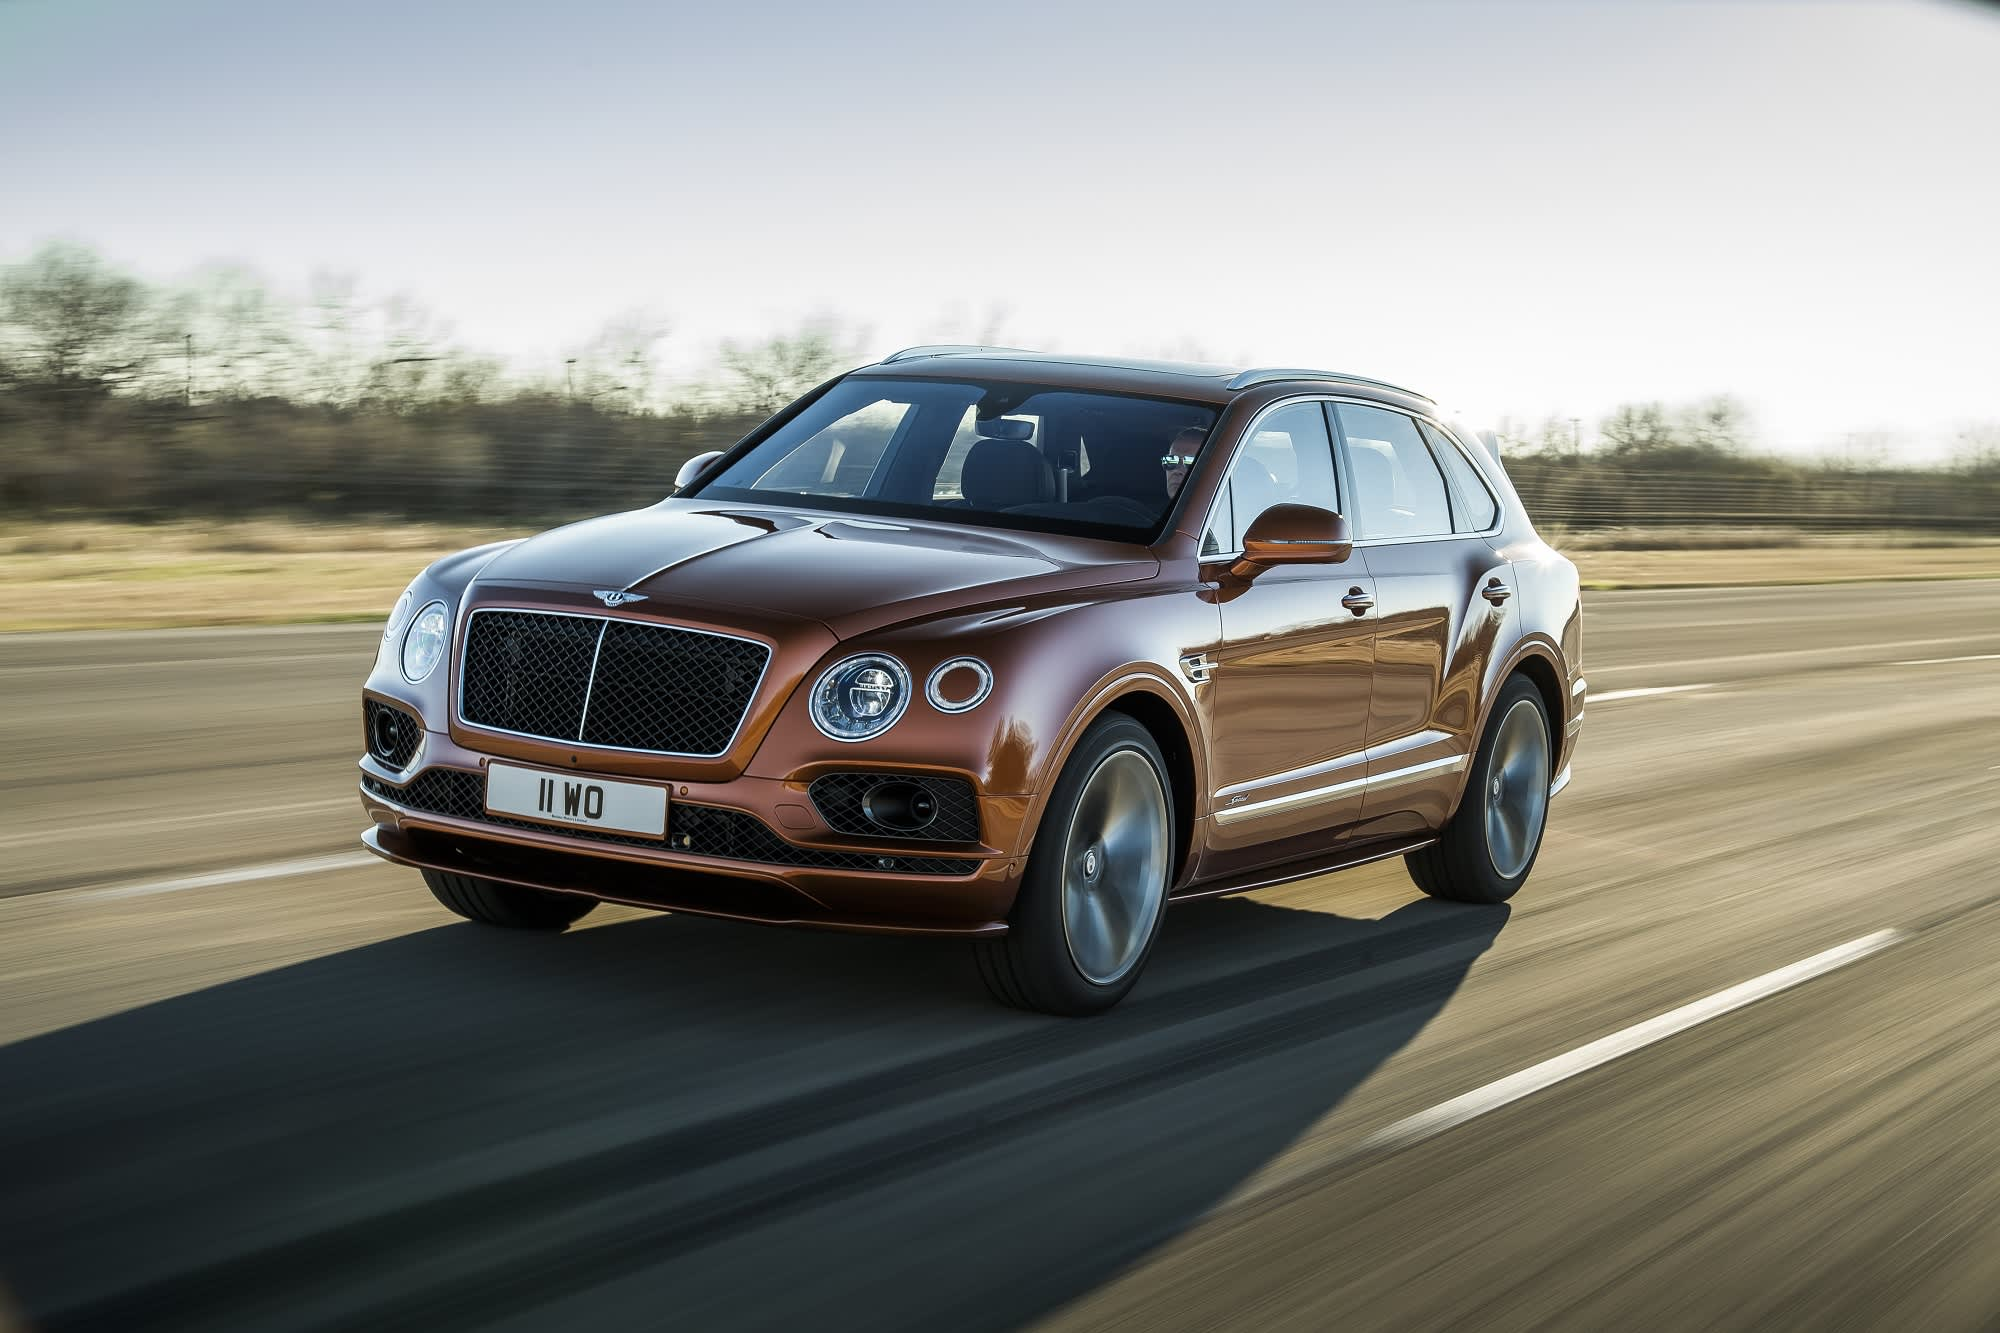 This Bentley Is Now The World S Fastest Suv Beating Out Lamborghini